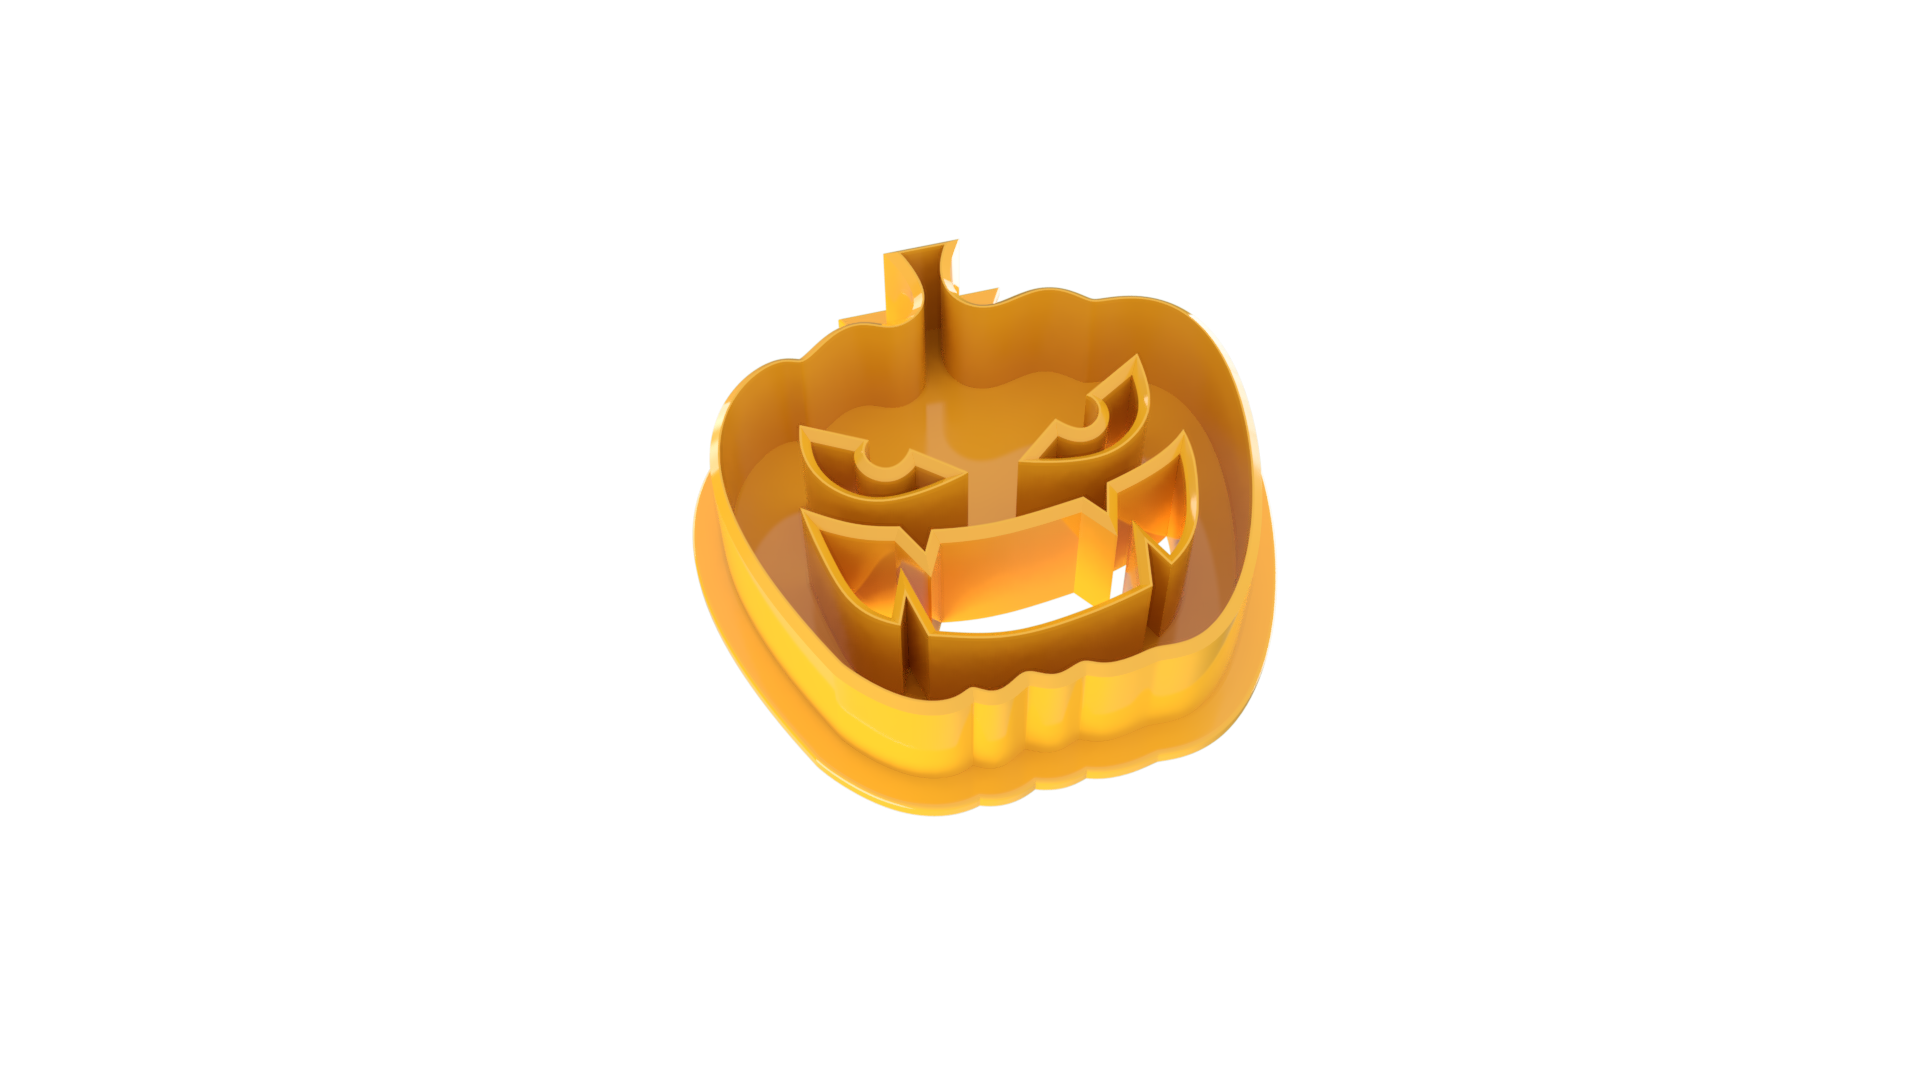 Halloween_cookie_cutter_2017-Oct-28_08-28-56PM-000_CustomizedView10452063200.png Download free STL file Halloween various Lantern Cookie Cutter • Design to 3D print, ZepTo